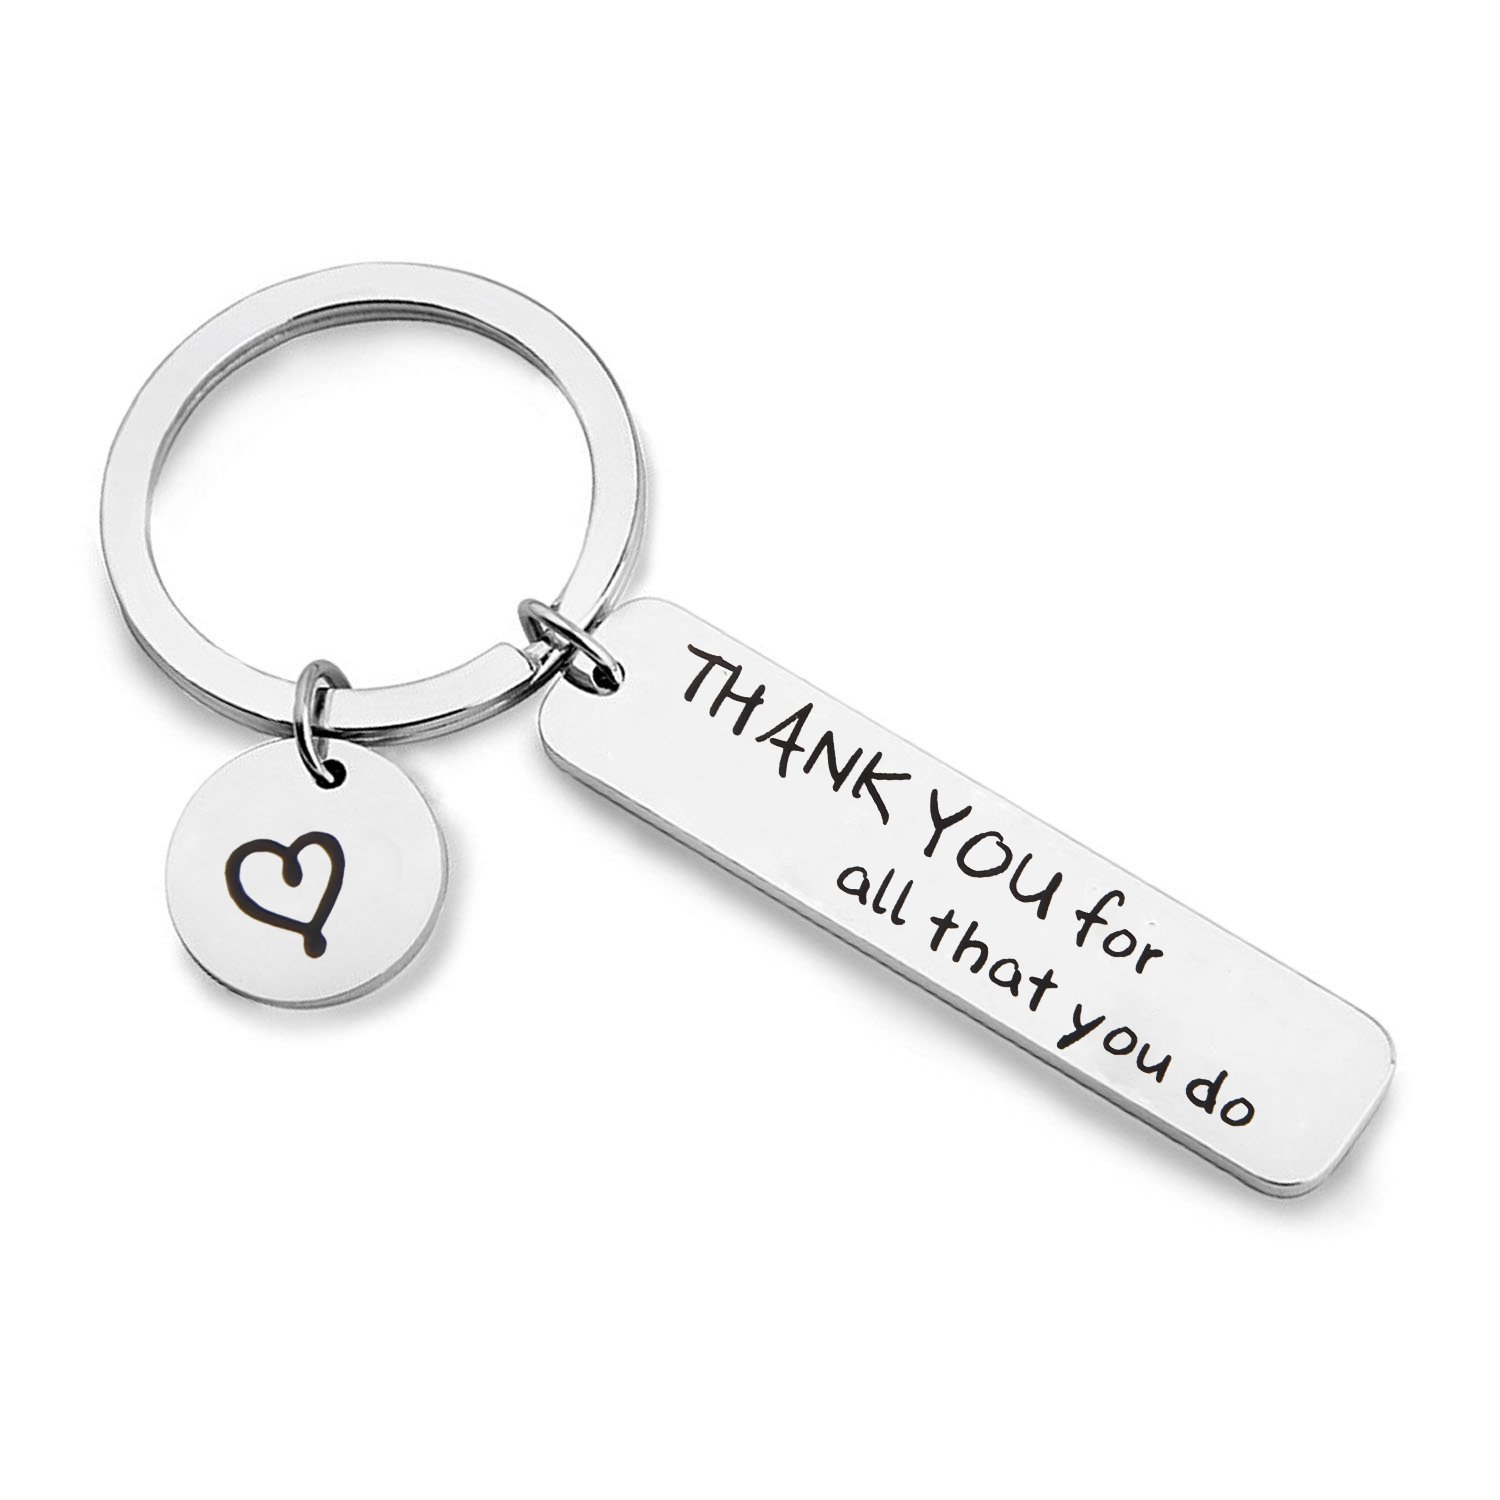 MAOFAED Appreciation Gift Thank You For All That You Do Cuff Bracelet Thank You Gift for Nurse Teacher Coach Employee (Thank you Keychain) by MAOFAED (Image #1)